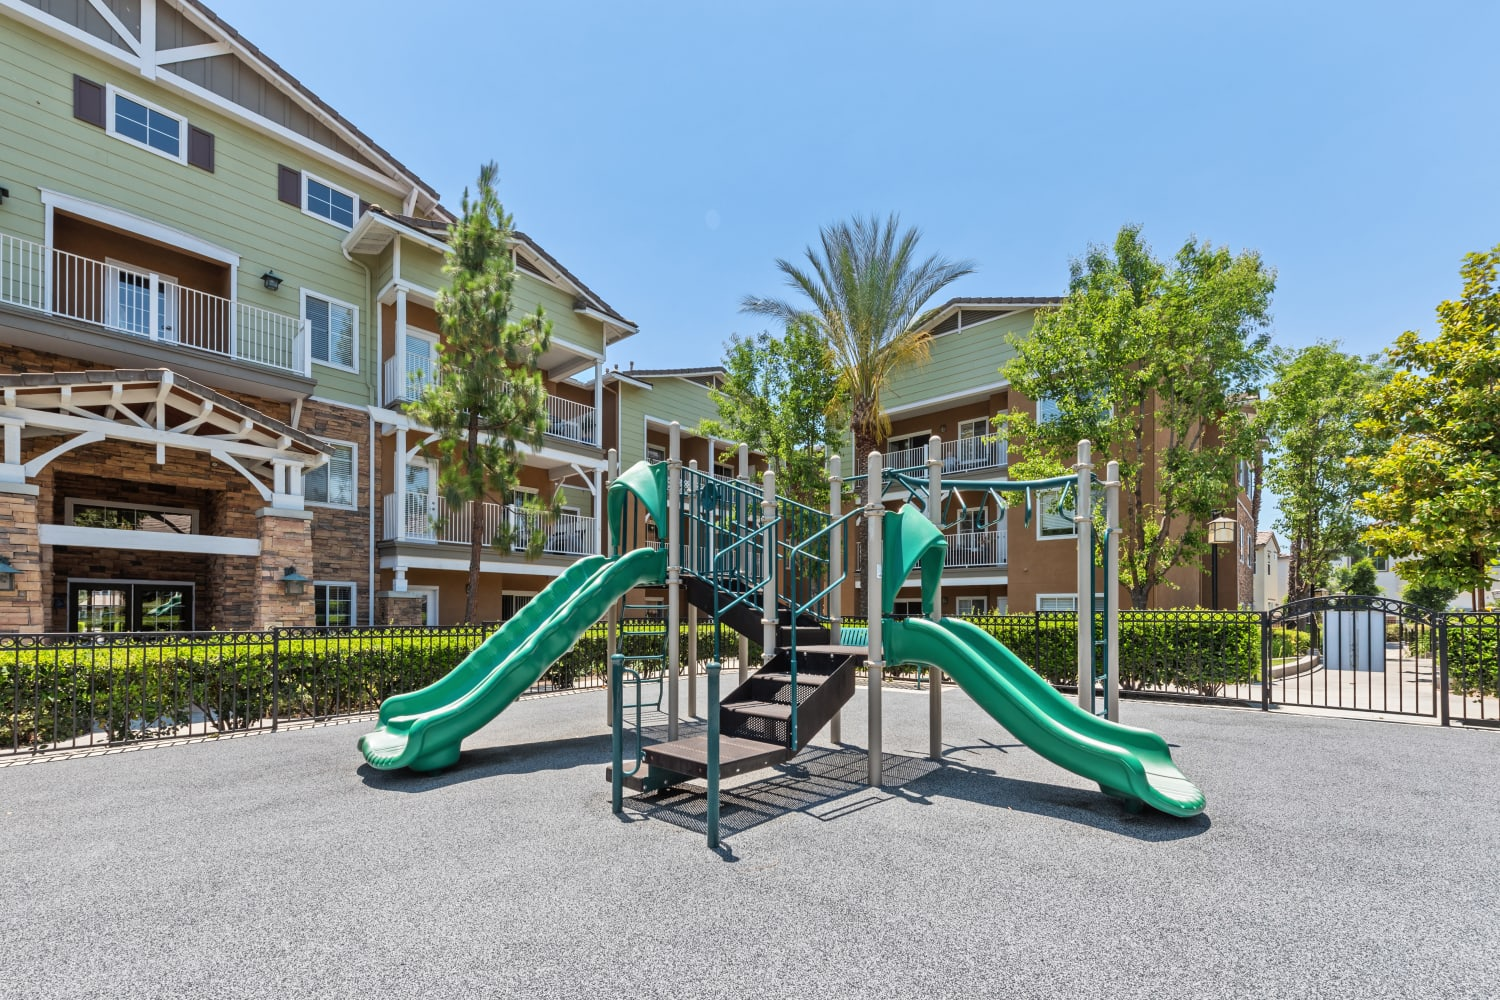 Beautiful Playground at The Village on 5th in Rancho Cucamonga, California